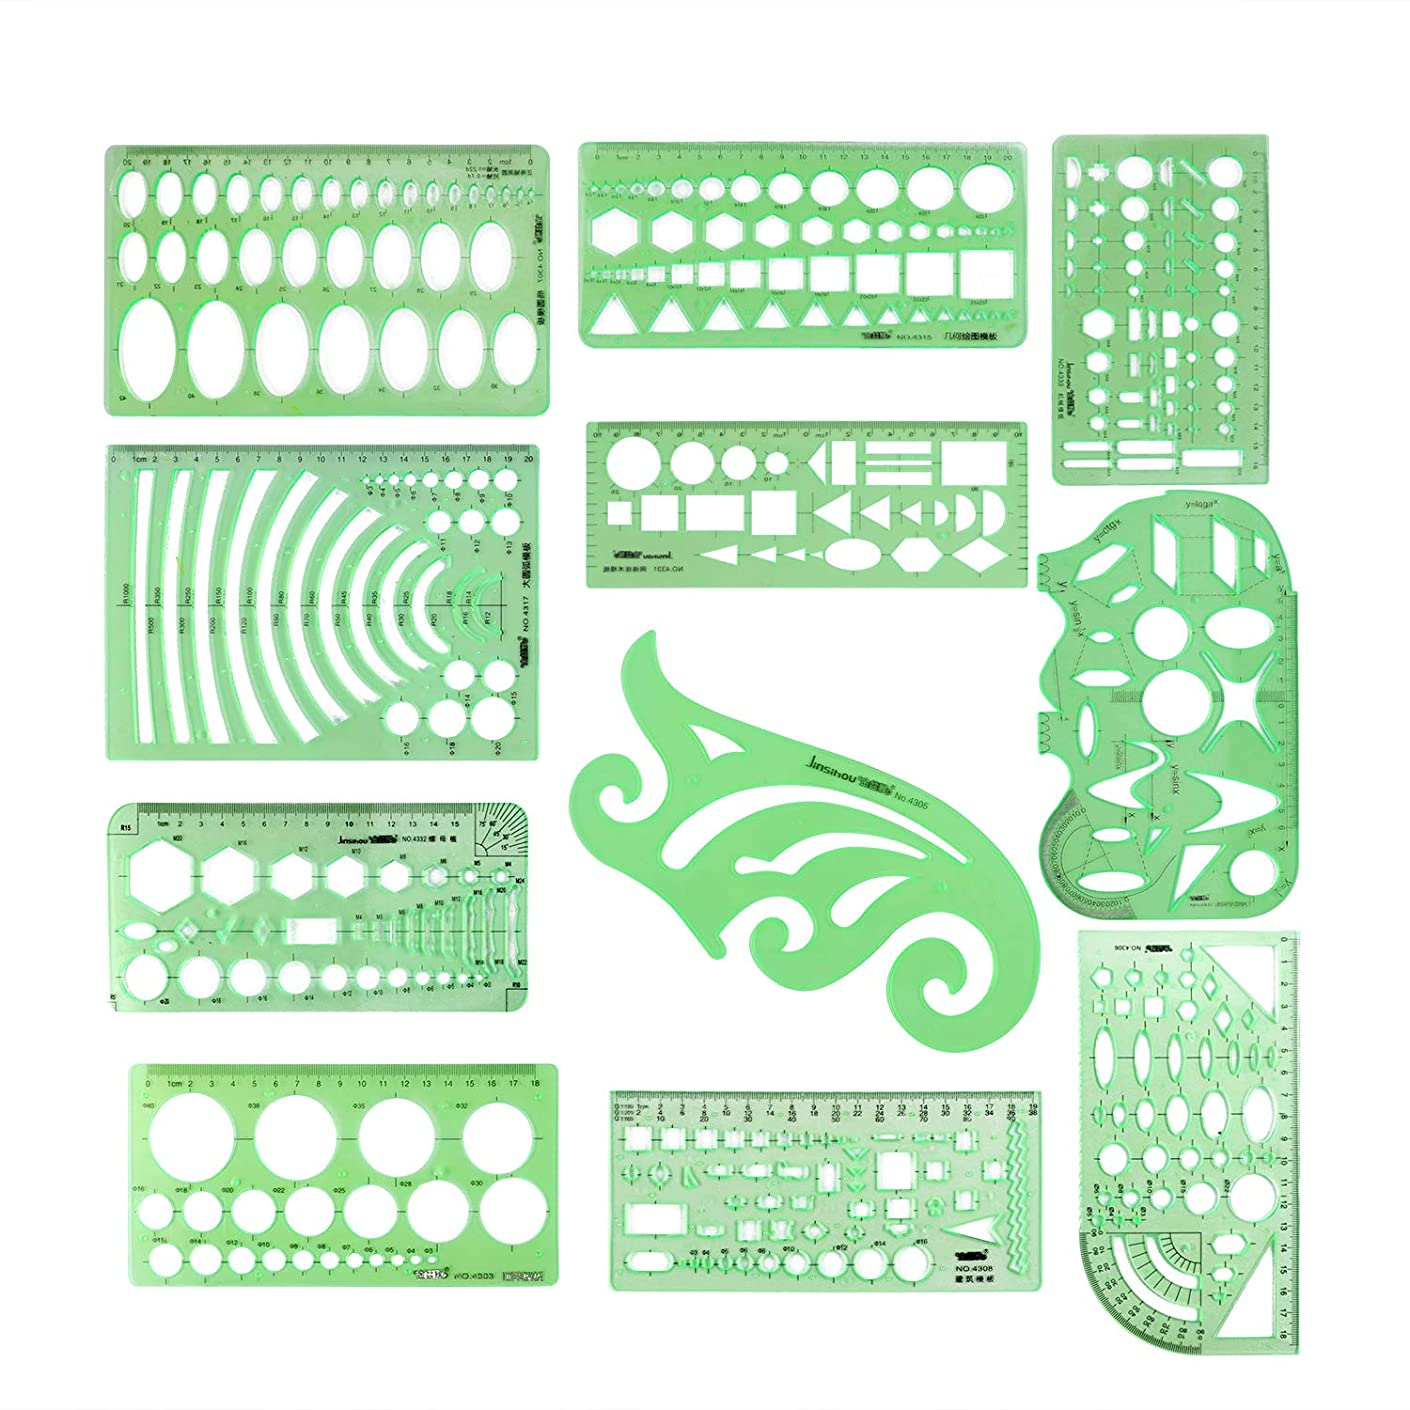 11pcs Drawing Template Ruler Stencils Tool Include Architectural Ruler,French Curve Template,Circle Template,Geometric Stencil Plastic Rule for School Studying and Office Design